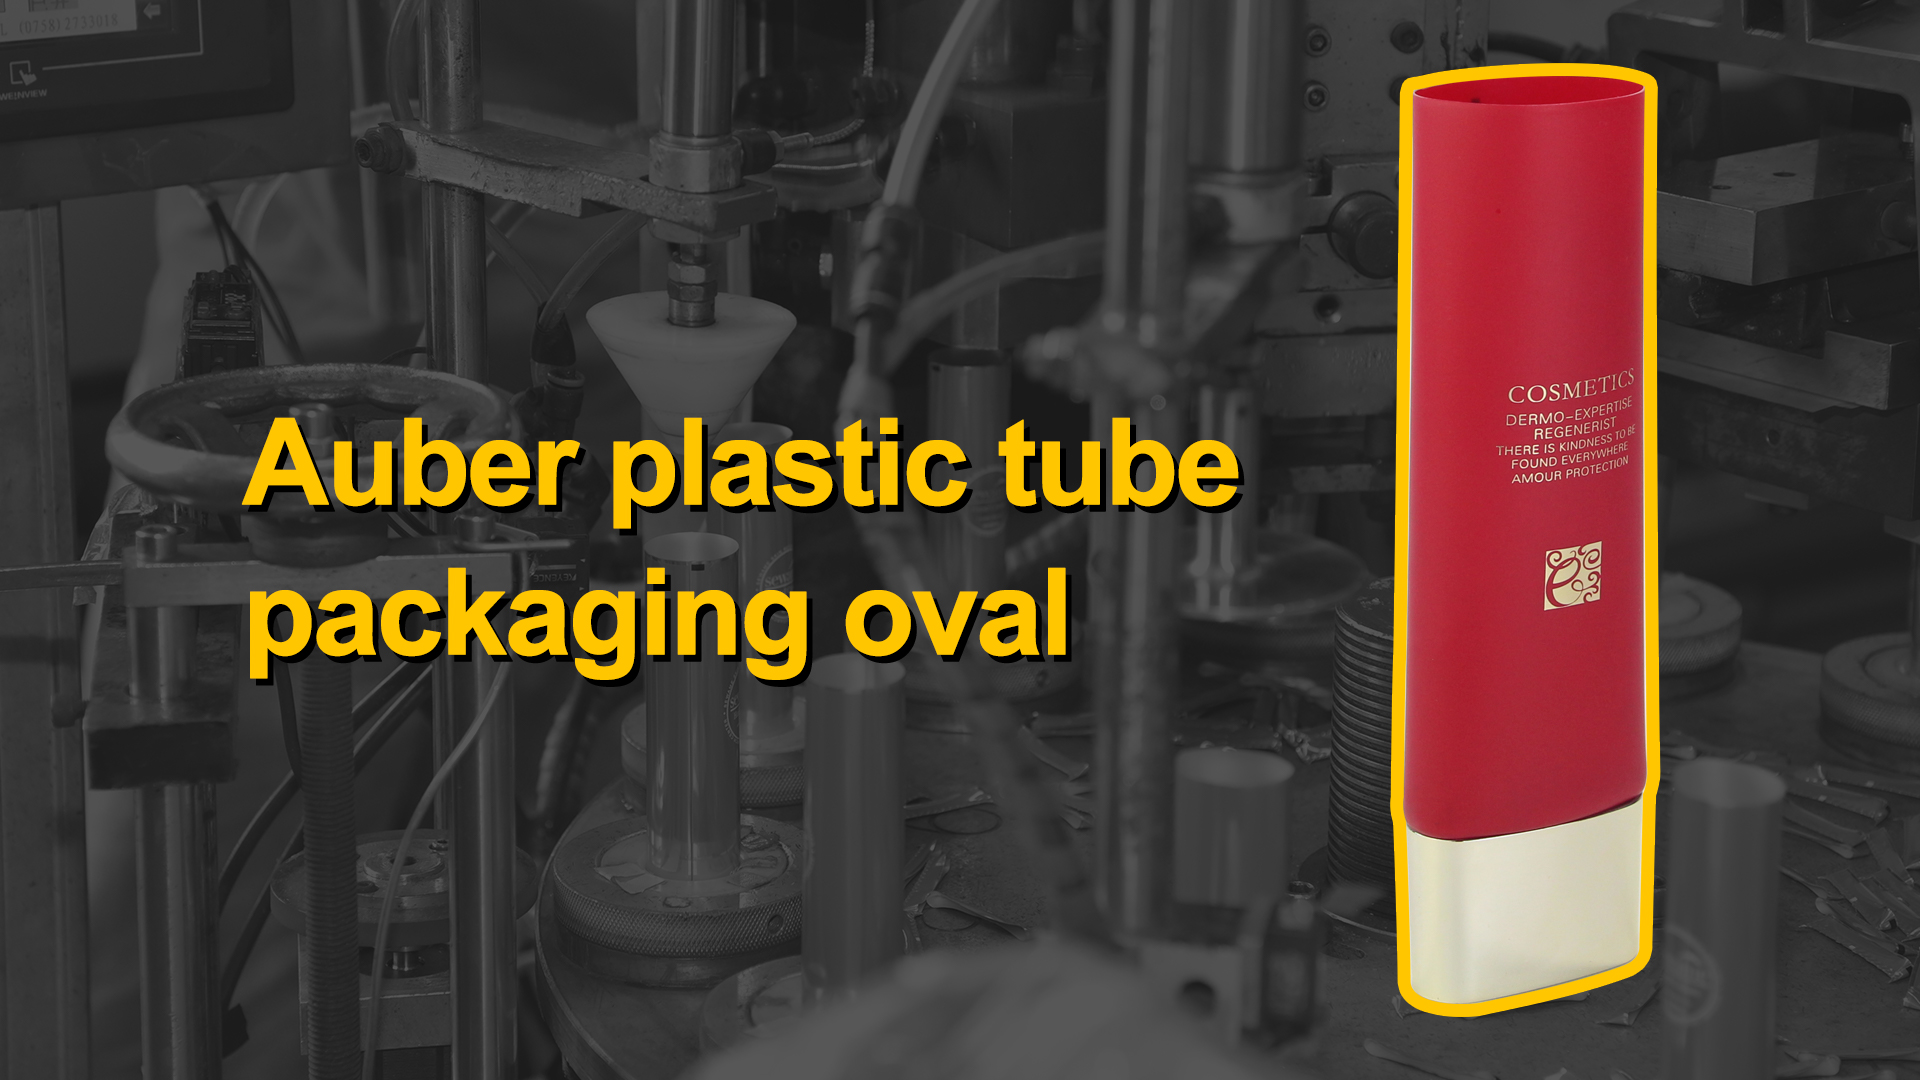 China plastic tube packaging oval manufacturers - Auber Packaging